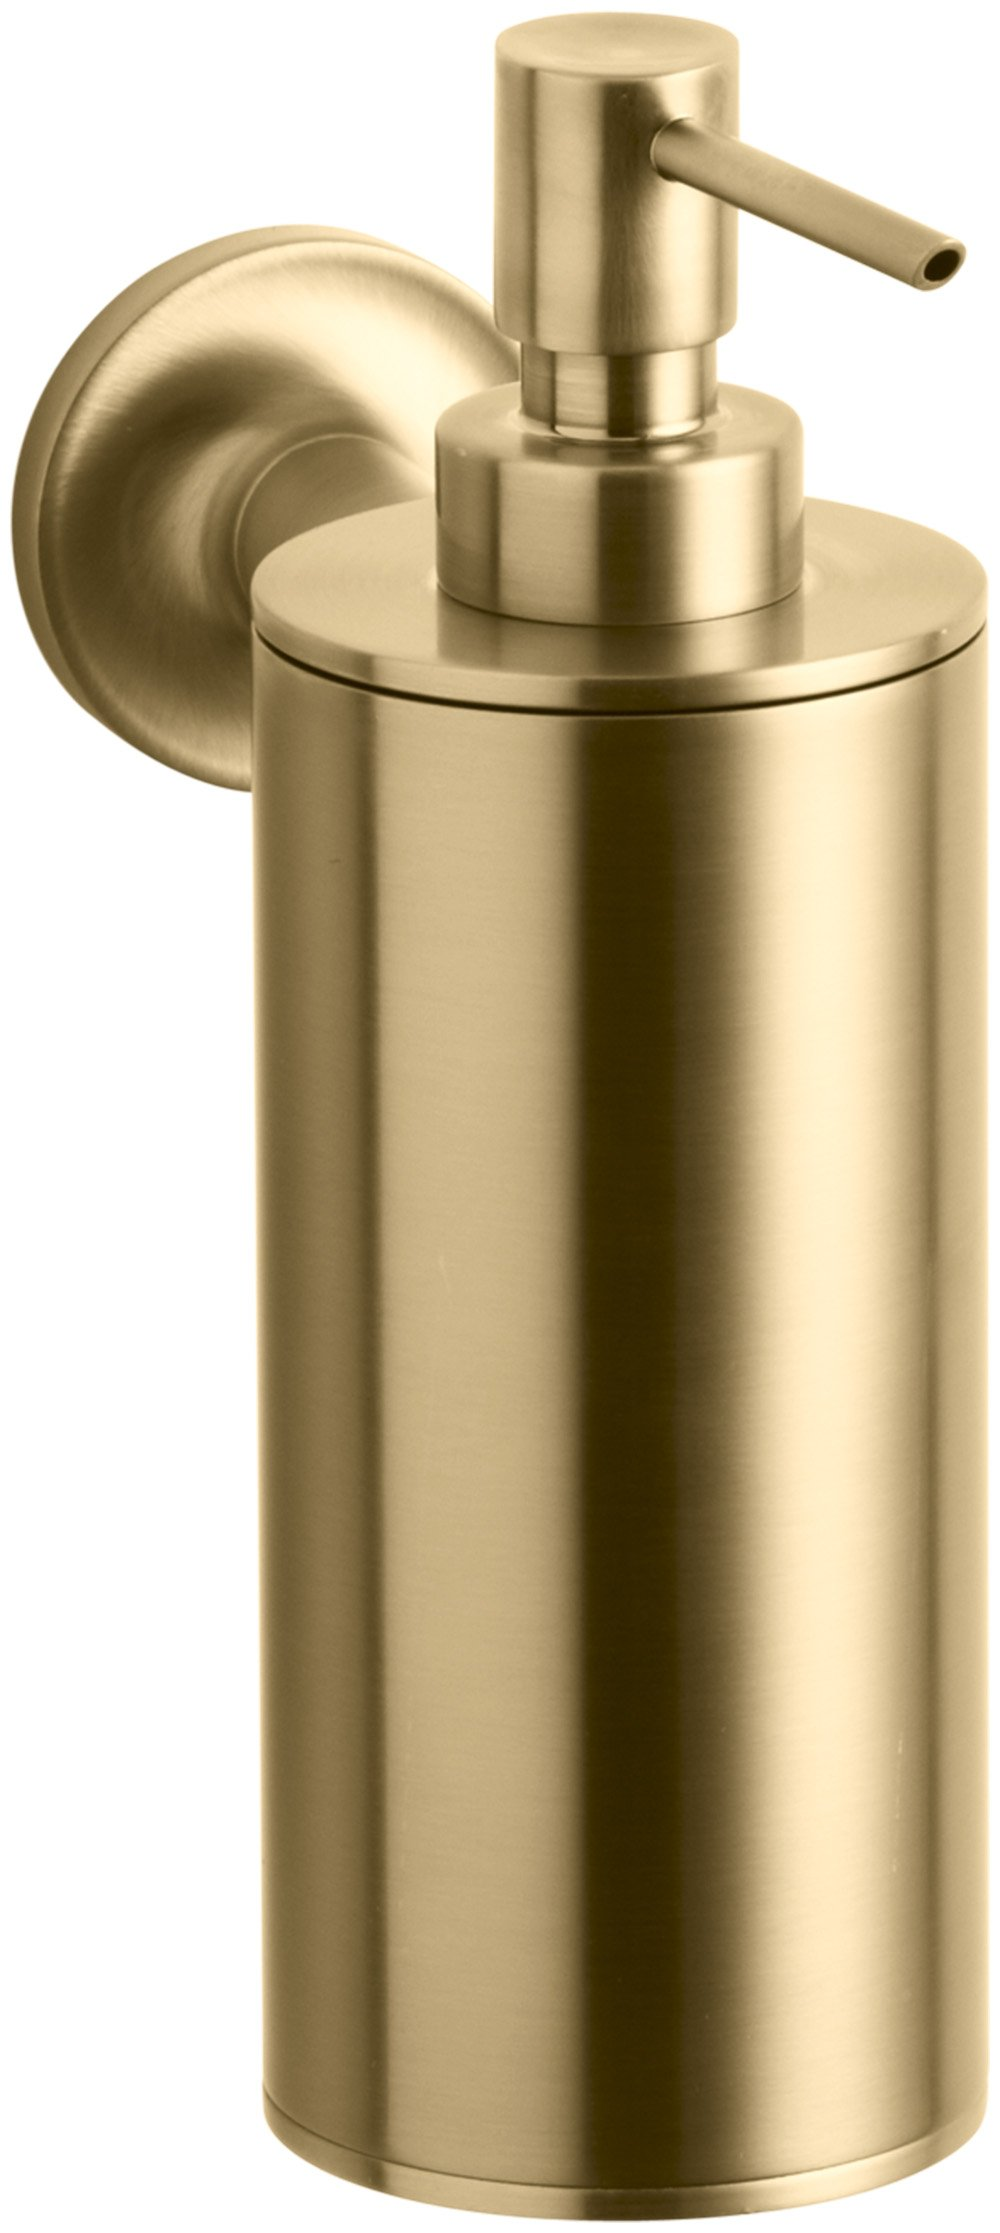 KOHLER K-14380-BGD Purist Wall-Mount Soap/Lotion Dispenser, Vibrant Modern Brushed Gold